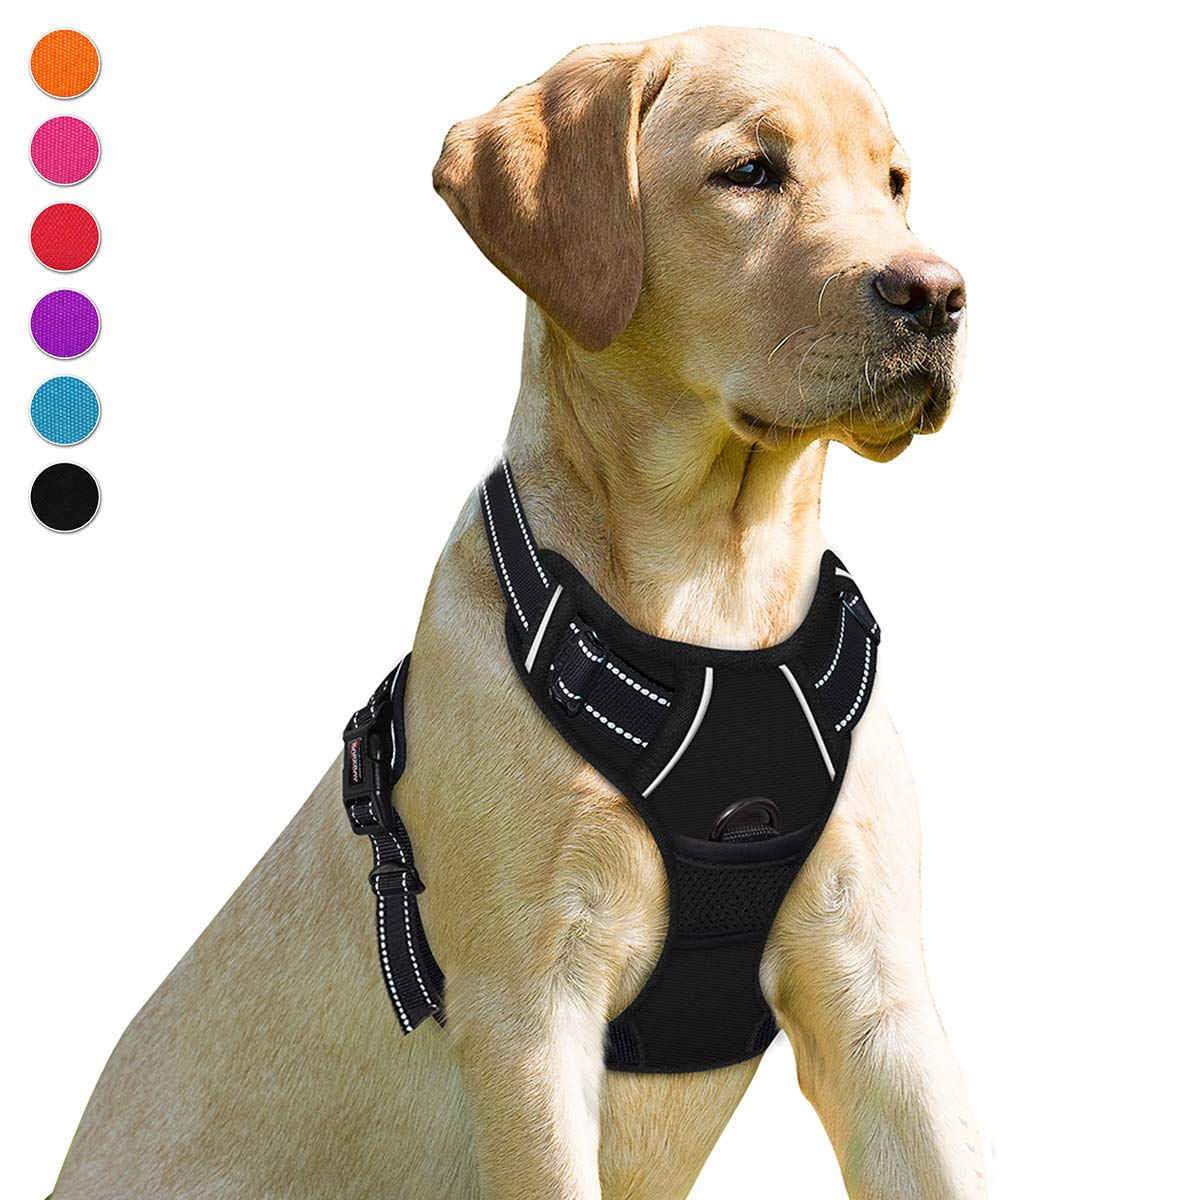 BARKBAY No Pull Dog Harness Front Clip Heavy Duty Reflective Easy Control Handle for Large Dog Walking(Black,S)